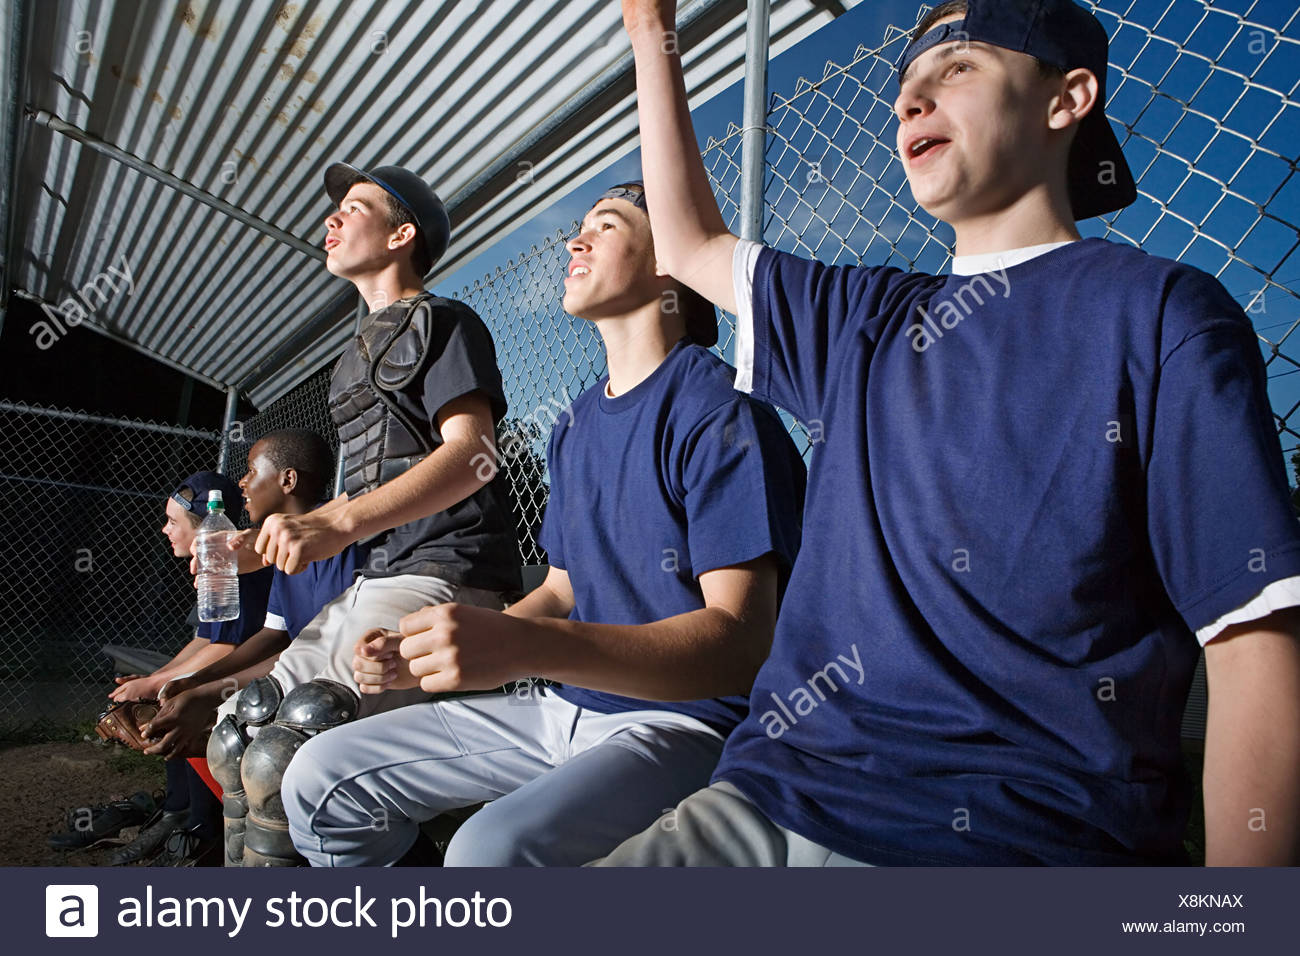 Five teenagers watching from the sidelines - Stock Image